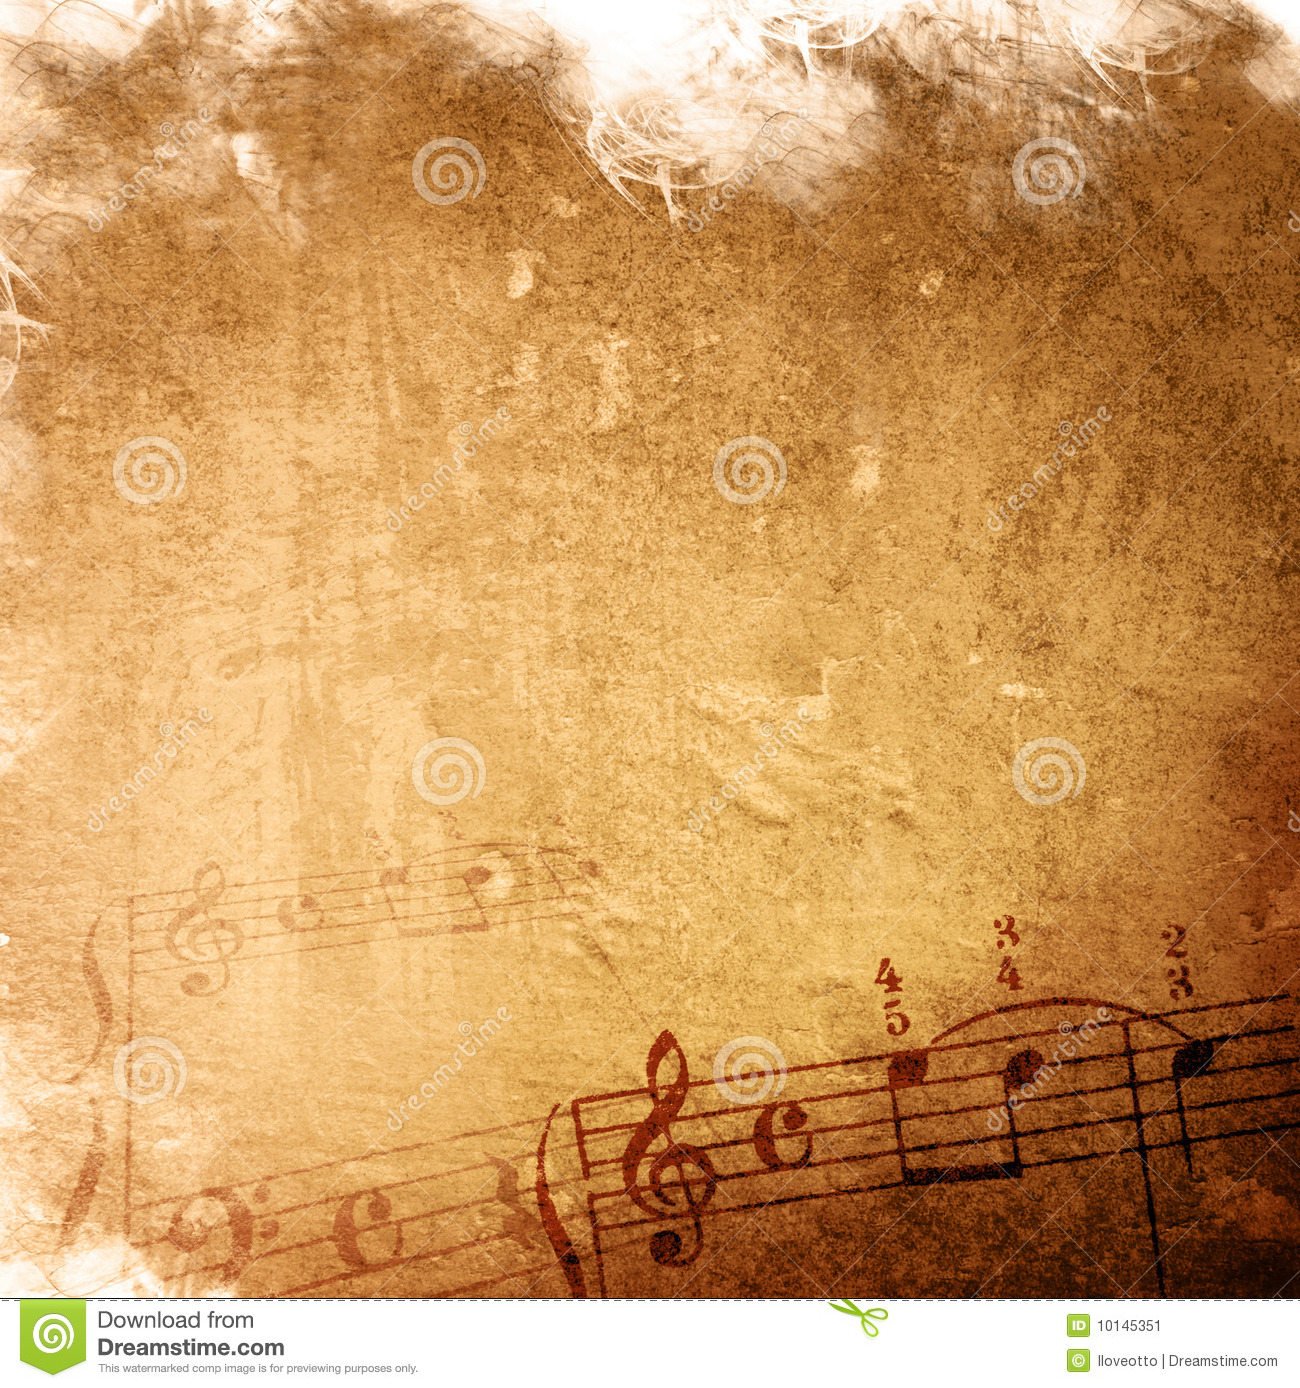 Free Background Music Download MP3 Melody Loops